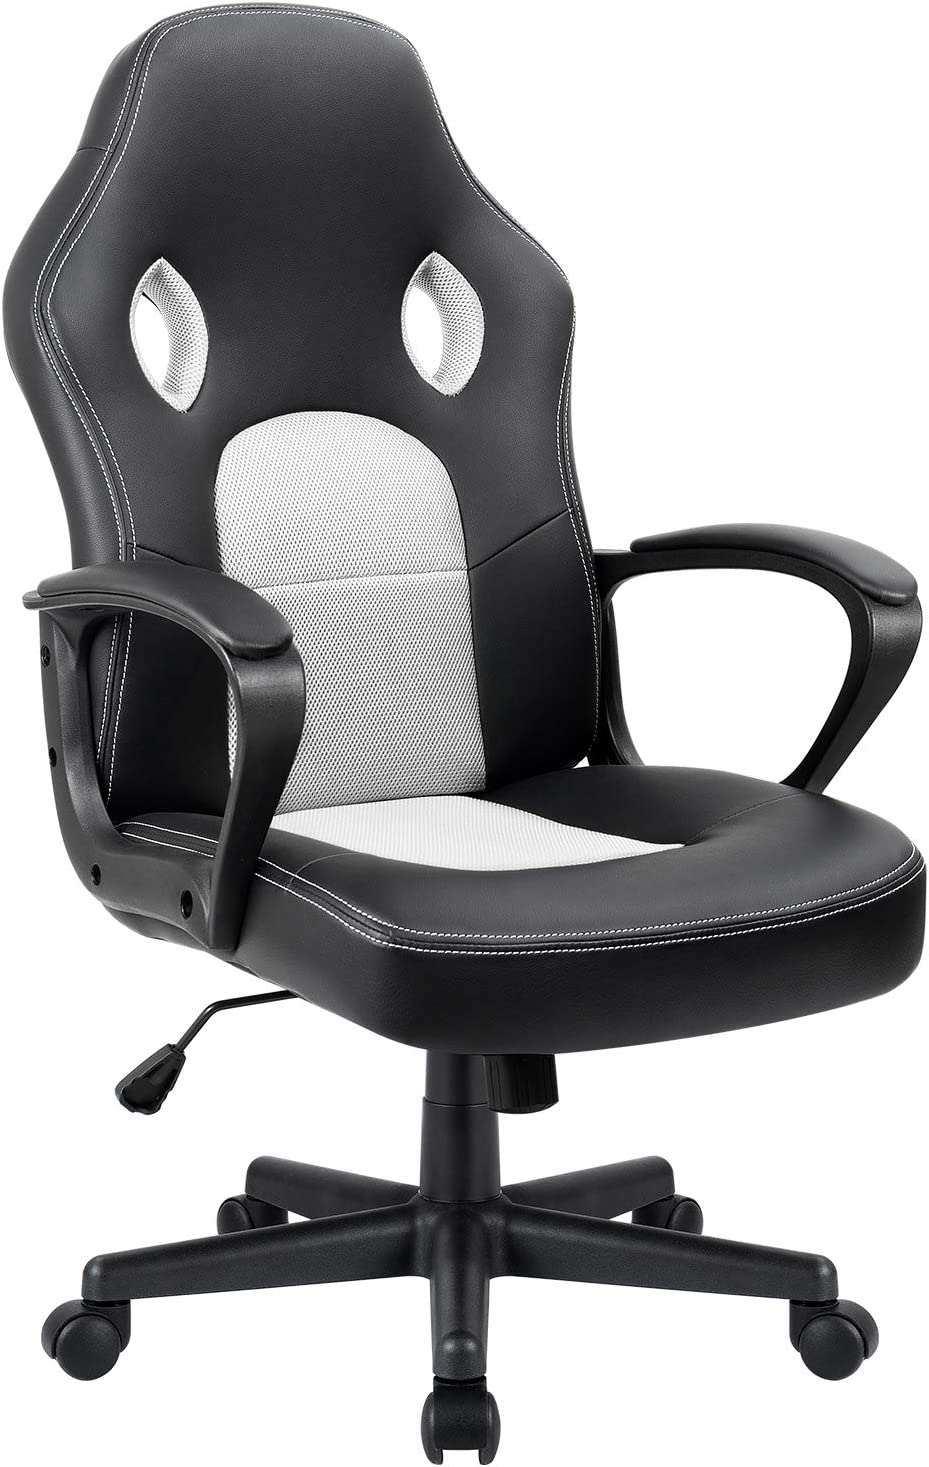 Furmax Office Chair Desk Leather Gaming Chair, High Back Ergonomic Adjustable Racing Chair,Task Swivel Executive Computer Chair Headrest and Lumbar Support (White)